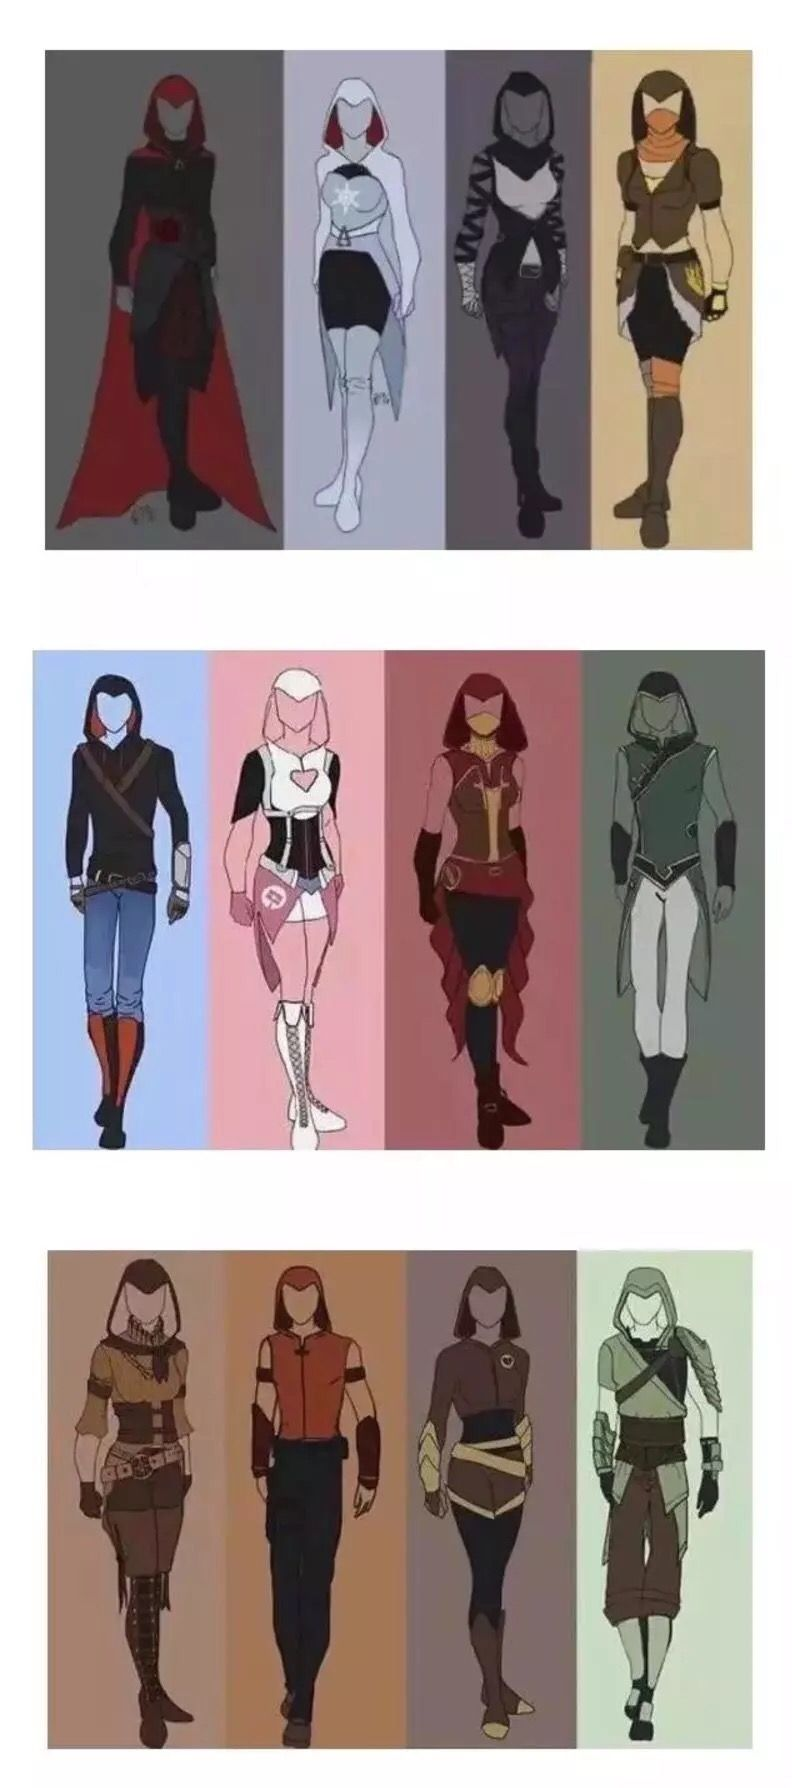 Rwby Assassin S Creed Style Rwby Characters Rwby Anime